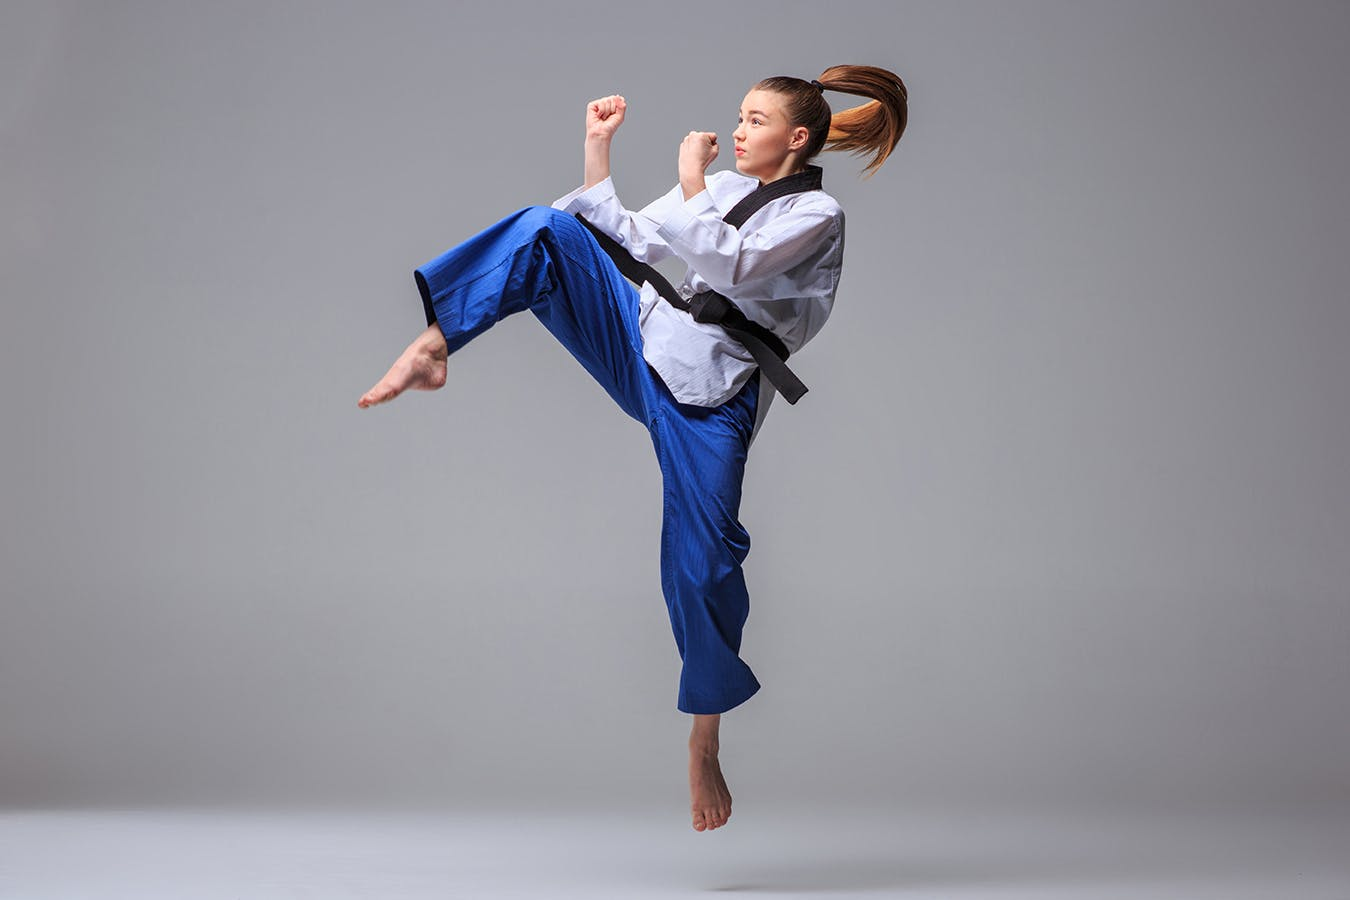 karate fu kung martial arts classes training belt near banners background practice doing